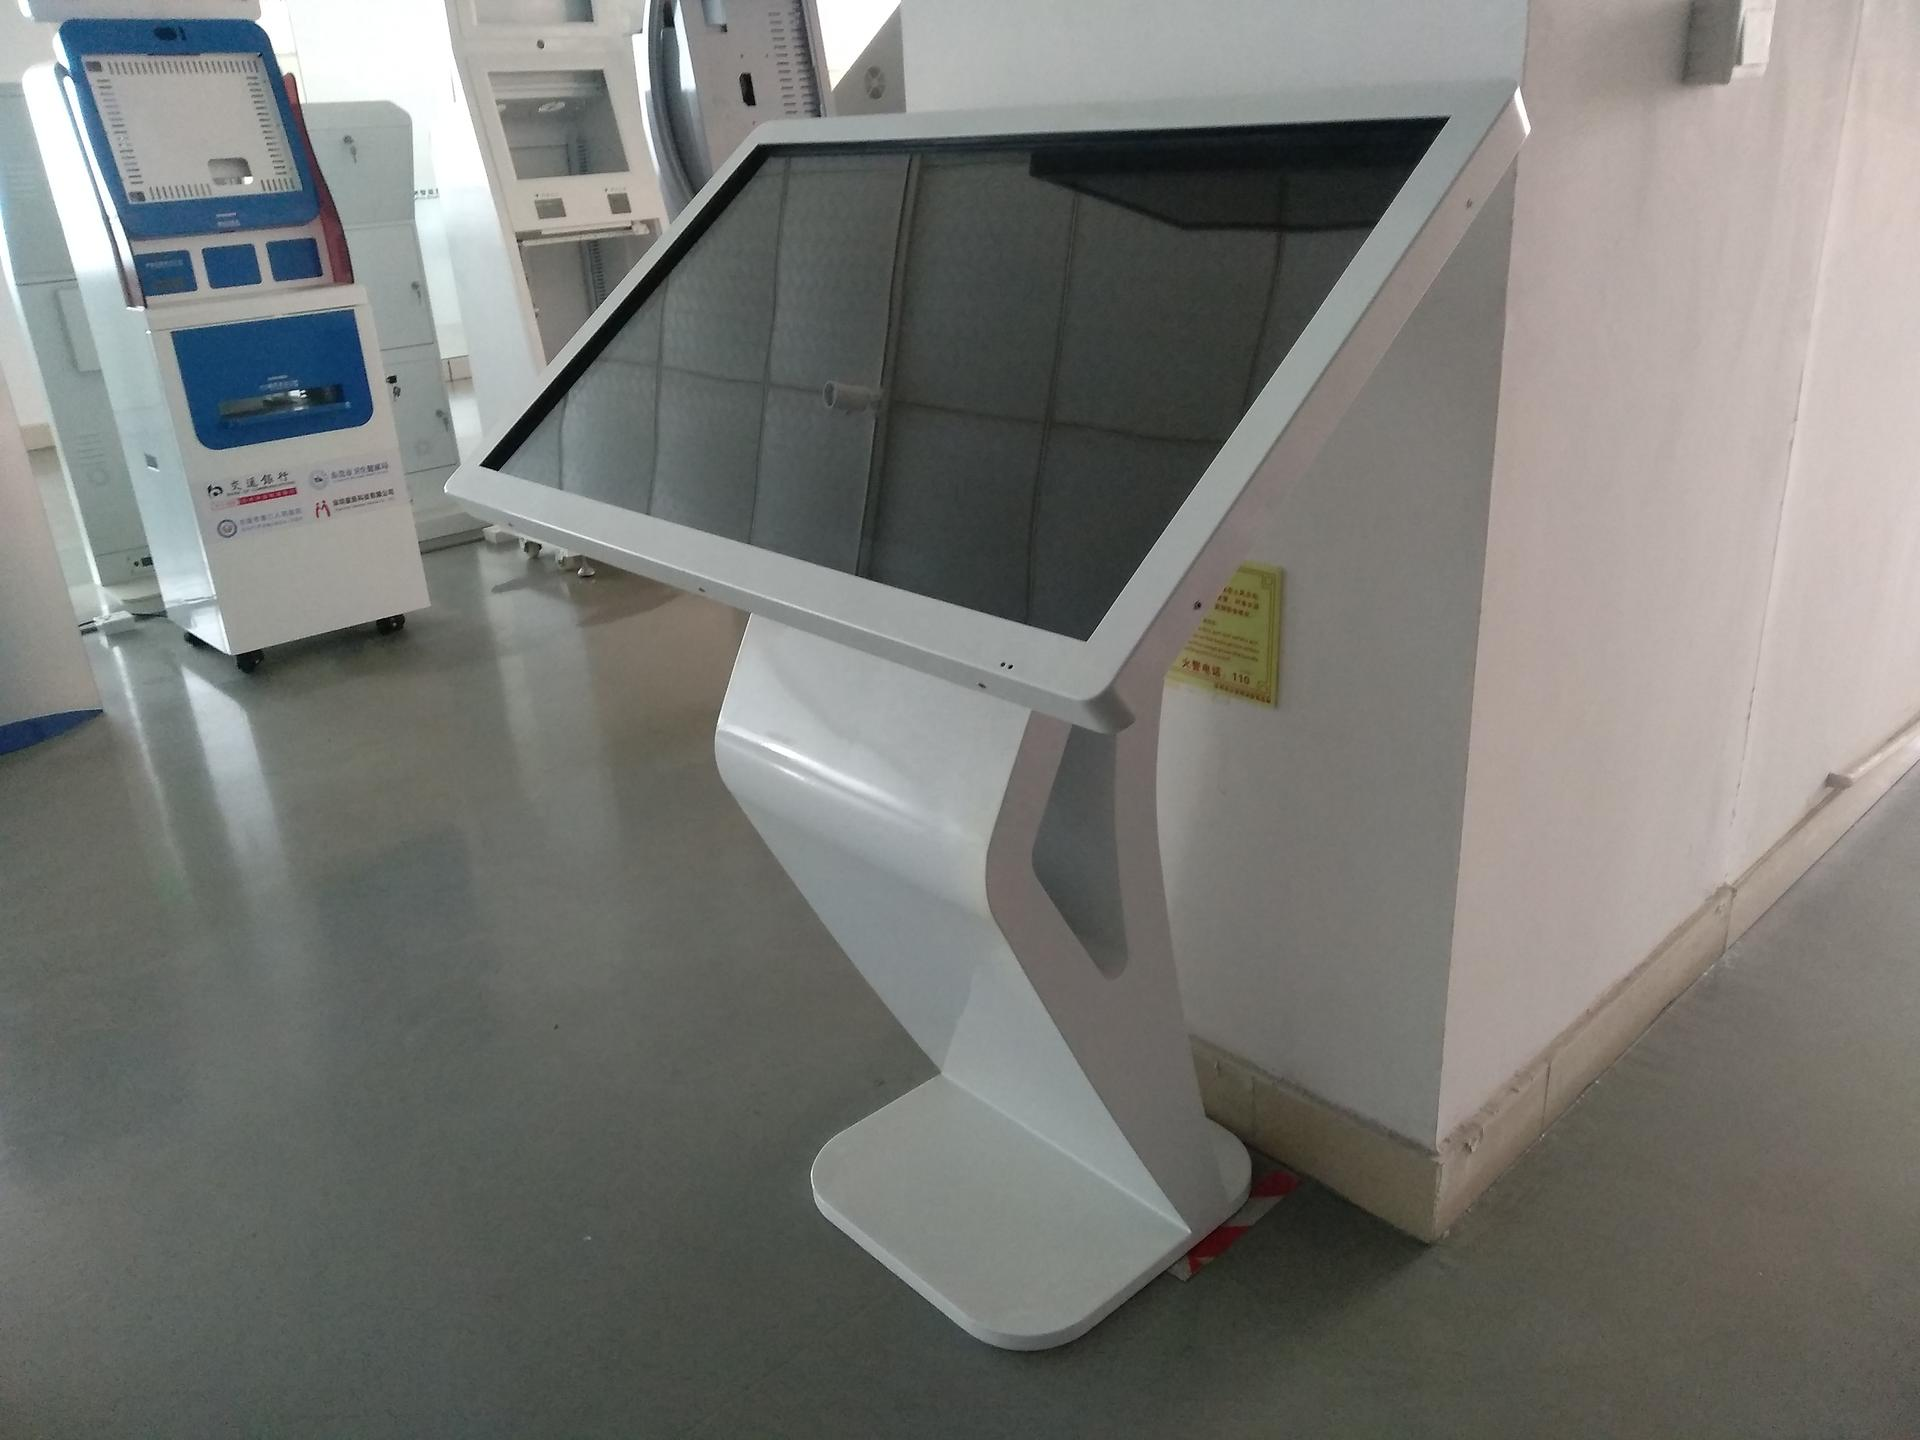 advertisement playing kiosk with clear and big LCD screen